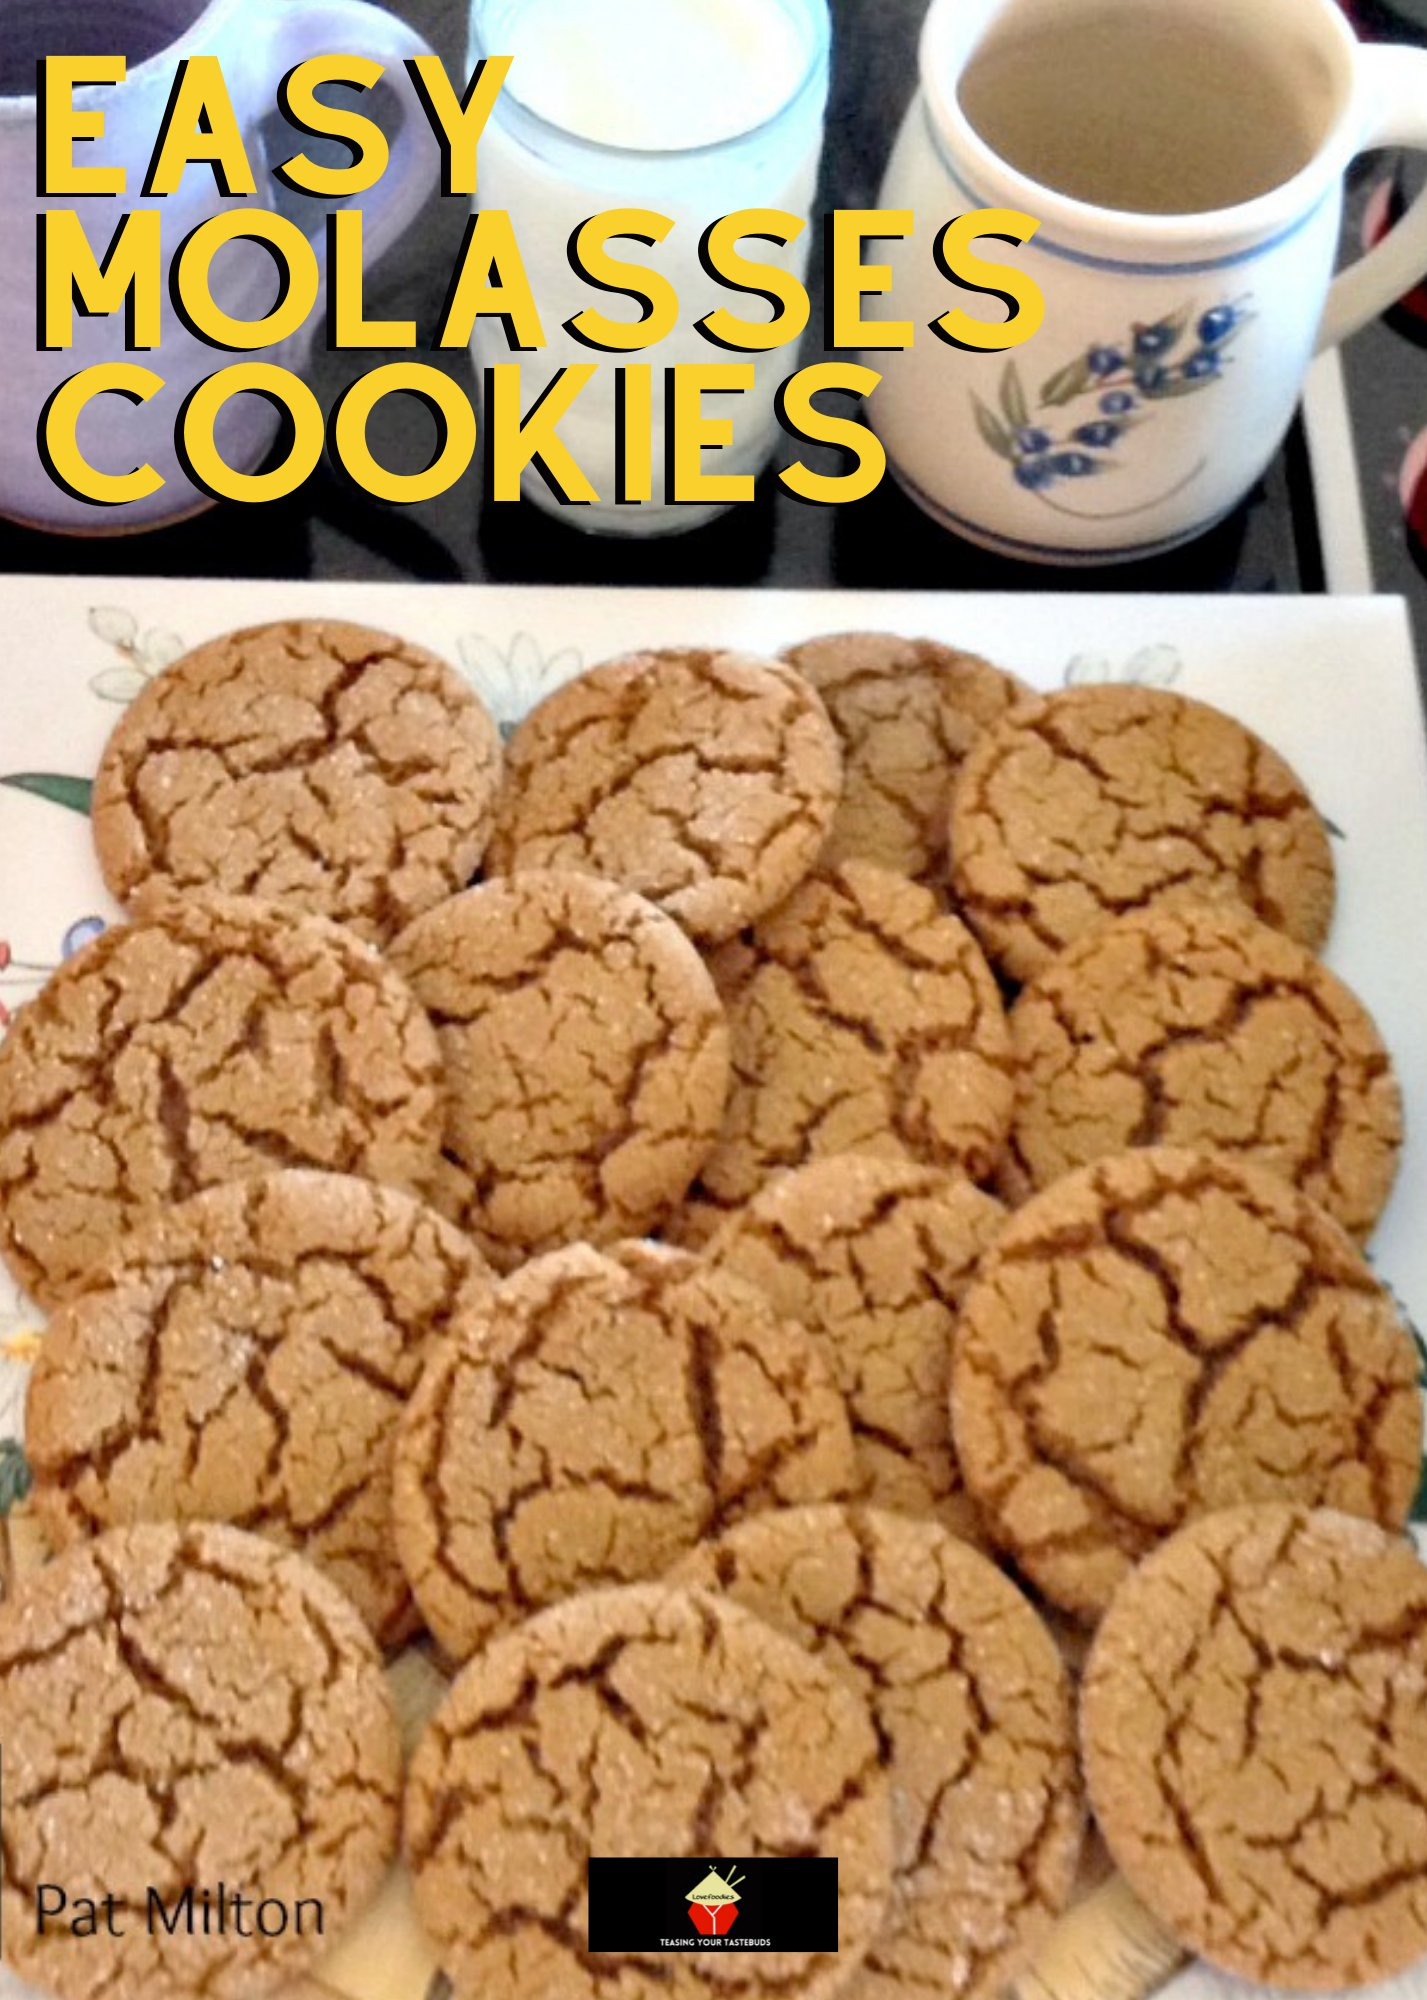 Easy Molasses Cookies, flavored with Christmas spices, make for a delicious cookie, ideal for Fall and the holidays. Crunchy outside and chewy inside. Great with a glass of milk!